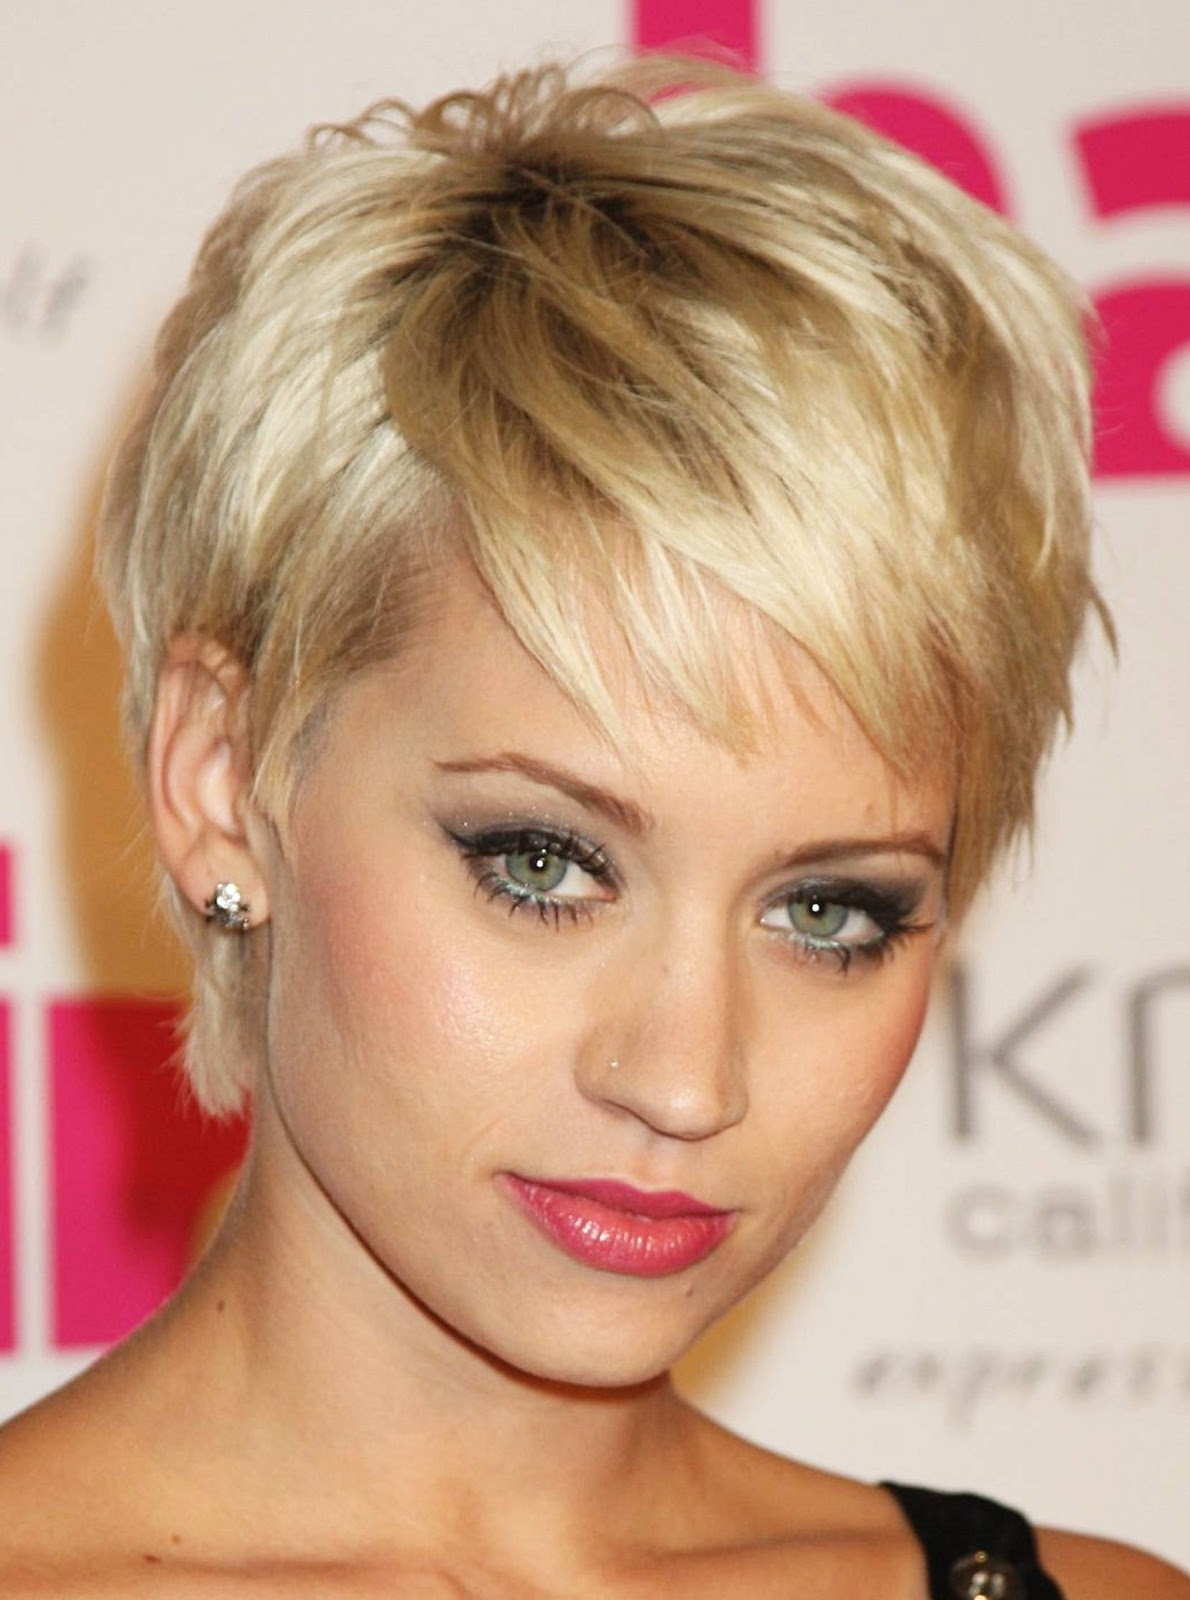 Best Short Hairstyles for Girls | OhTopTen